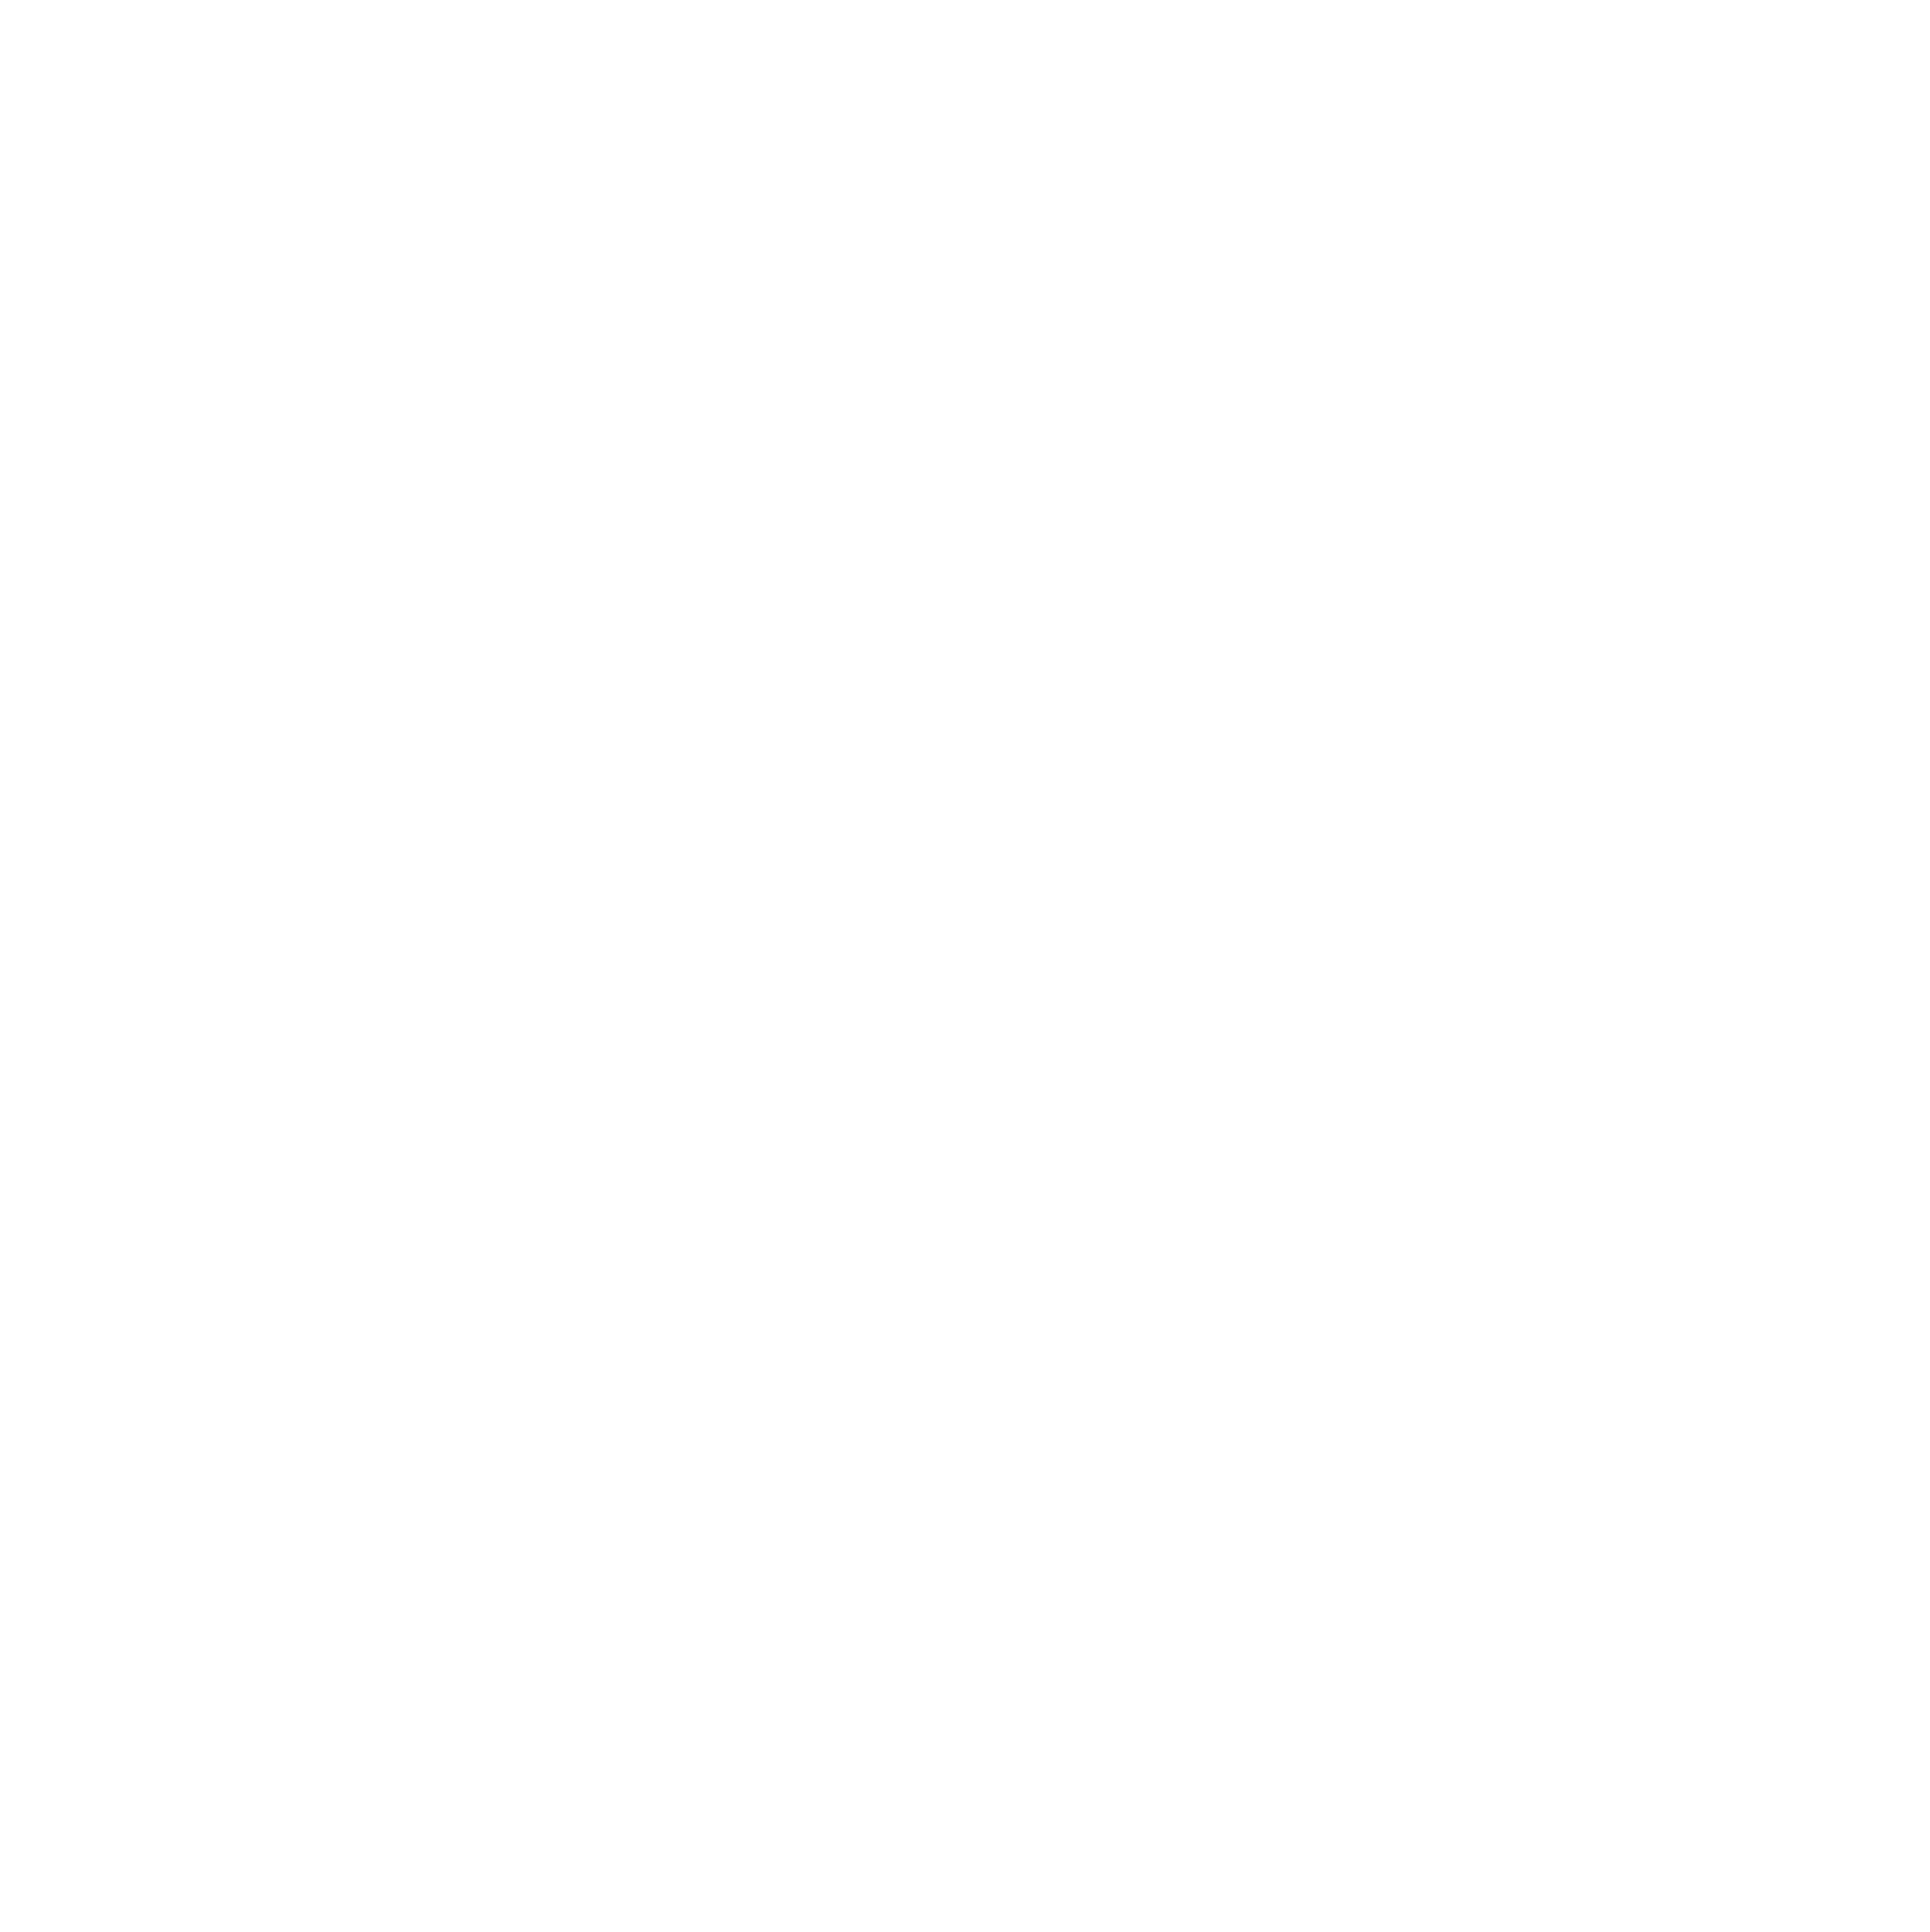 SCL Managed Services